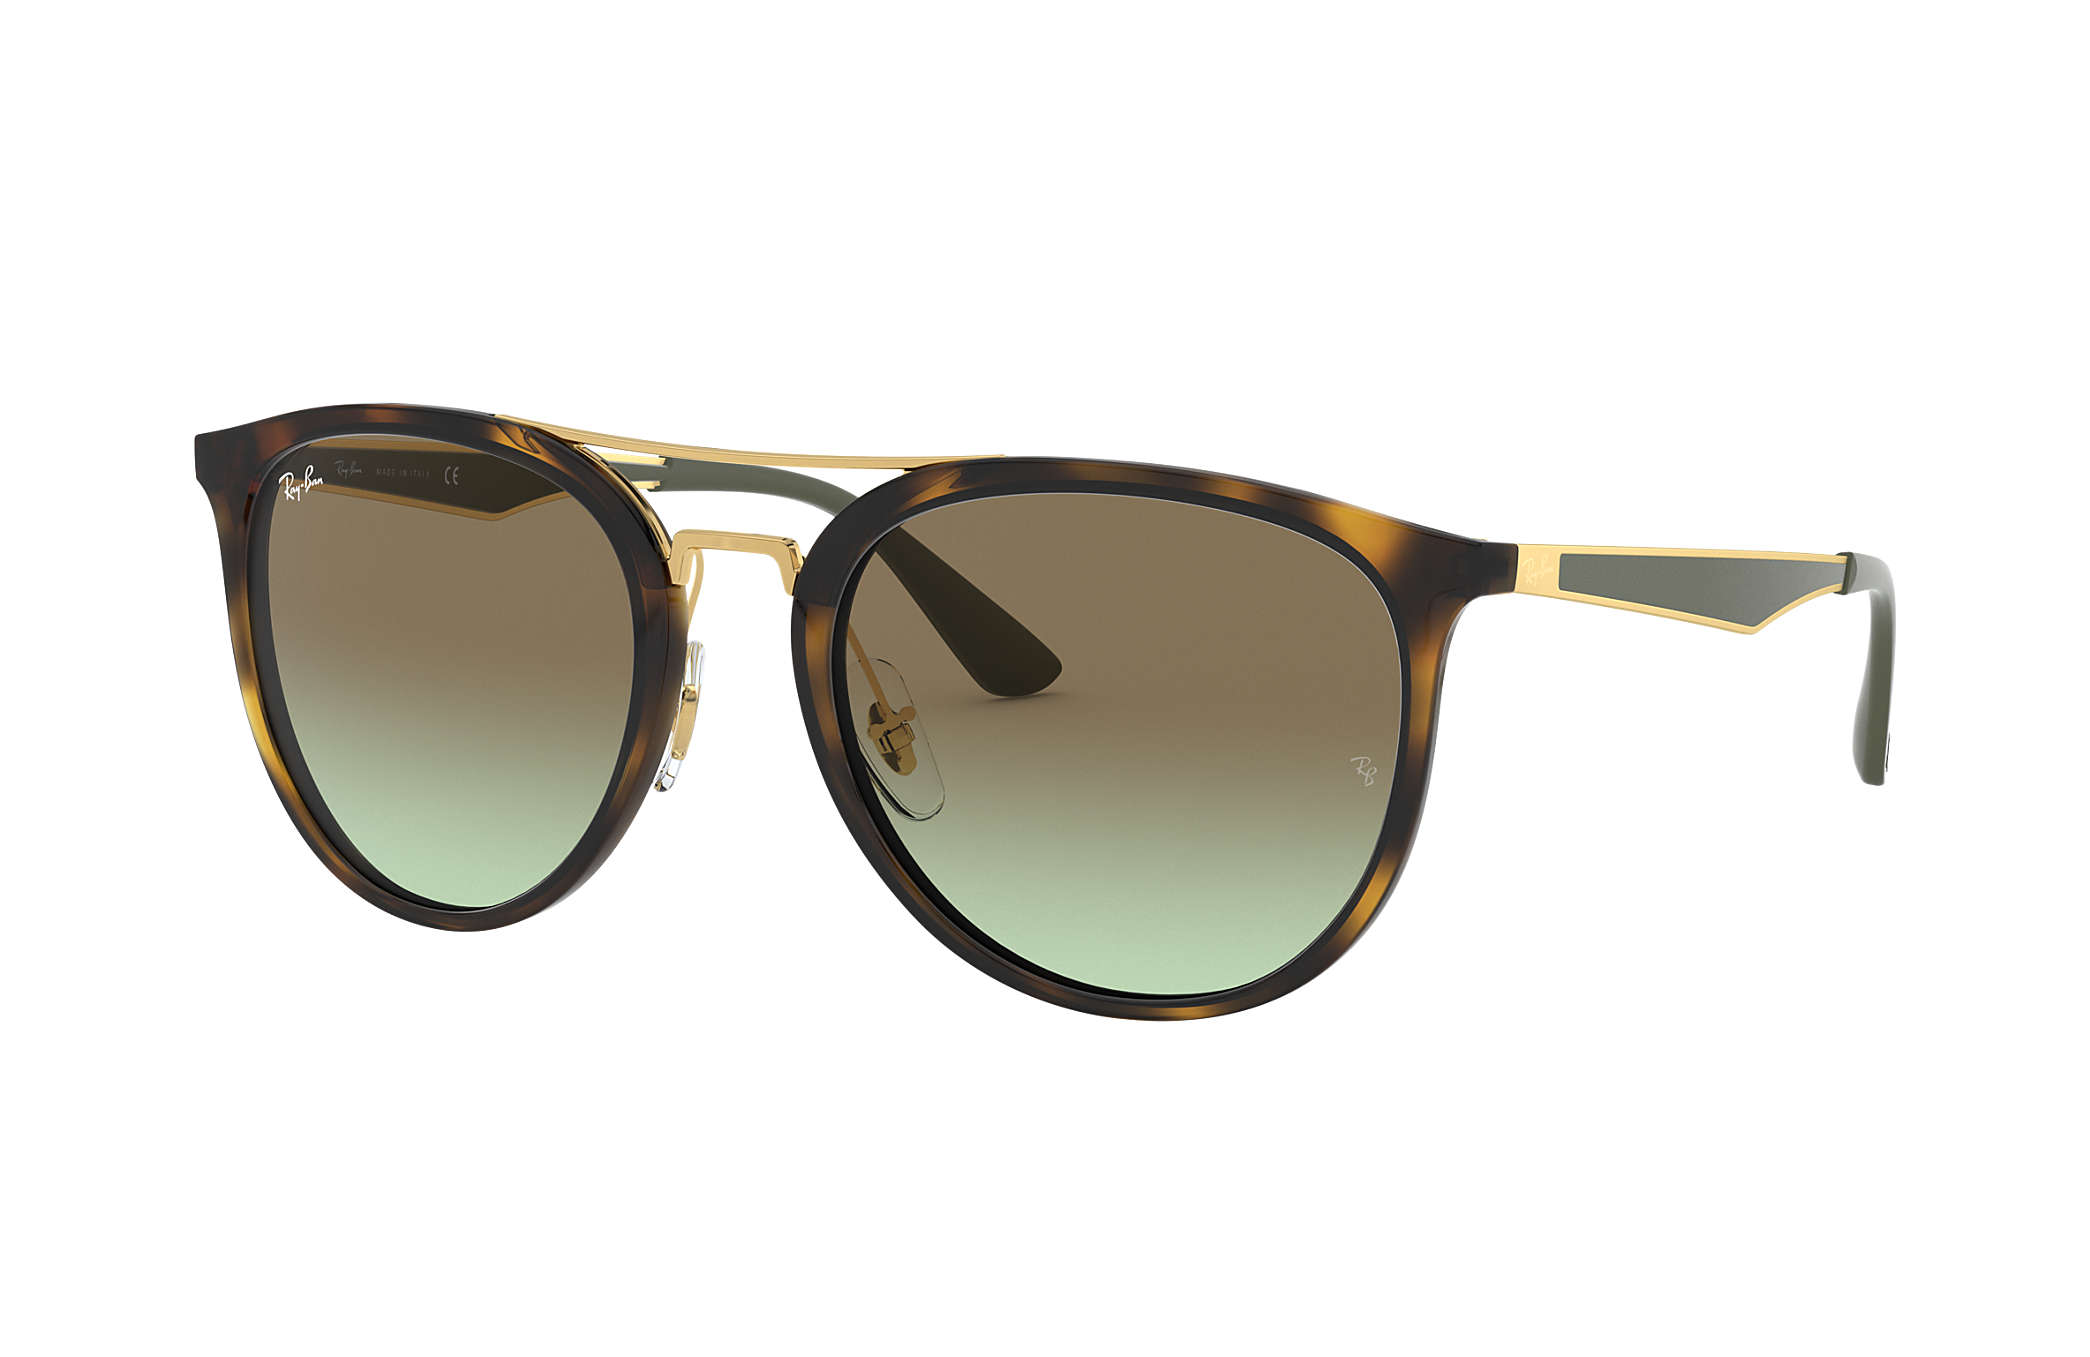 399d88bbd8 Ray-Ban RB4285 Tortoise - Injected - Brown Lenses - 0RB42856372E855 ...